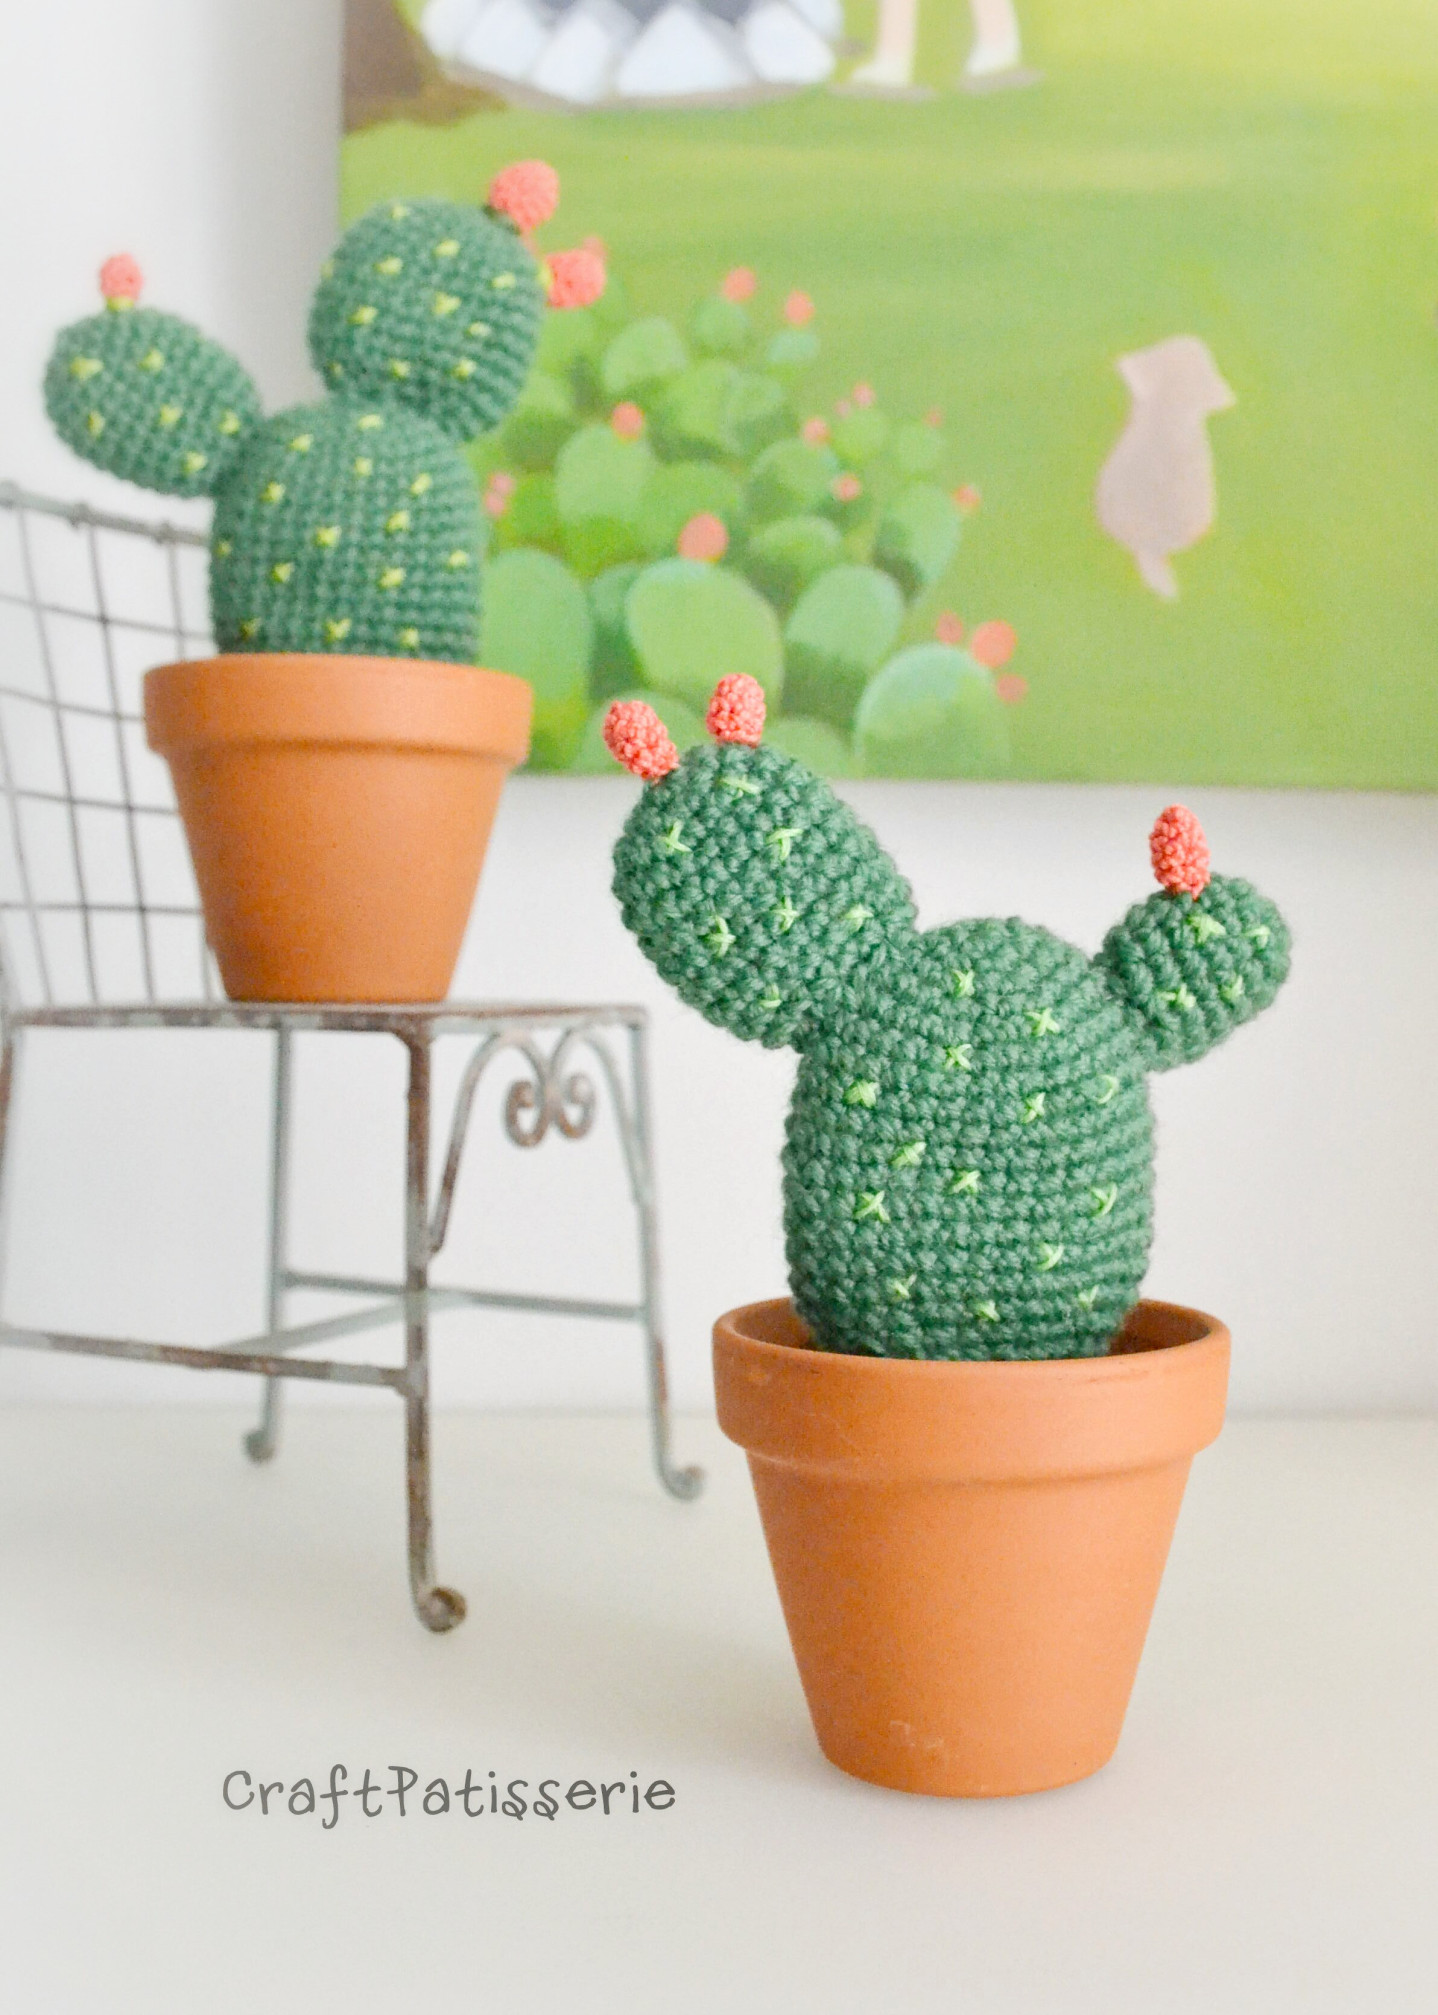 10+ Desert Cactus Amigurumi Crochet Patterns - Look